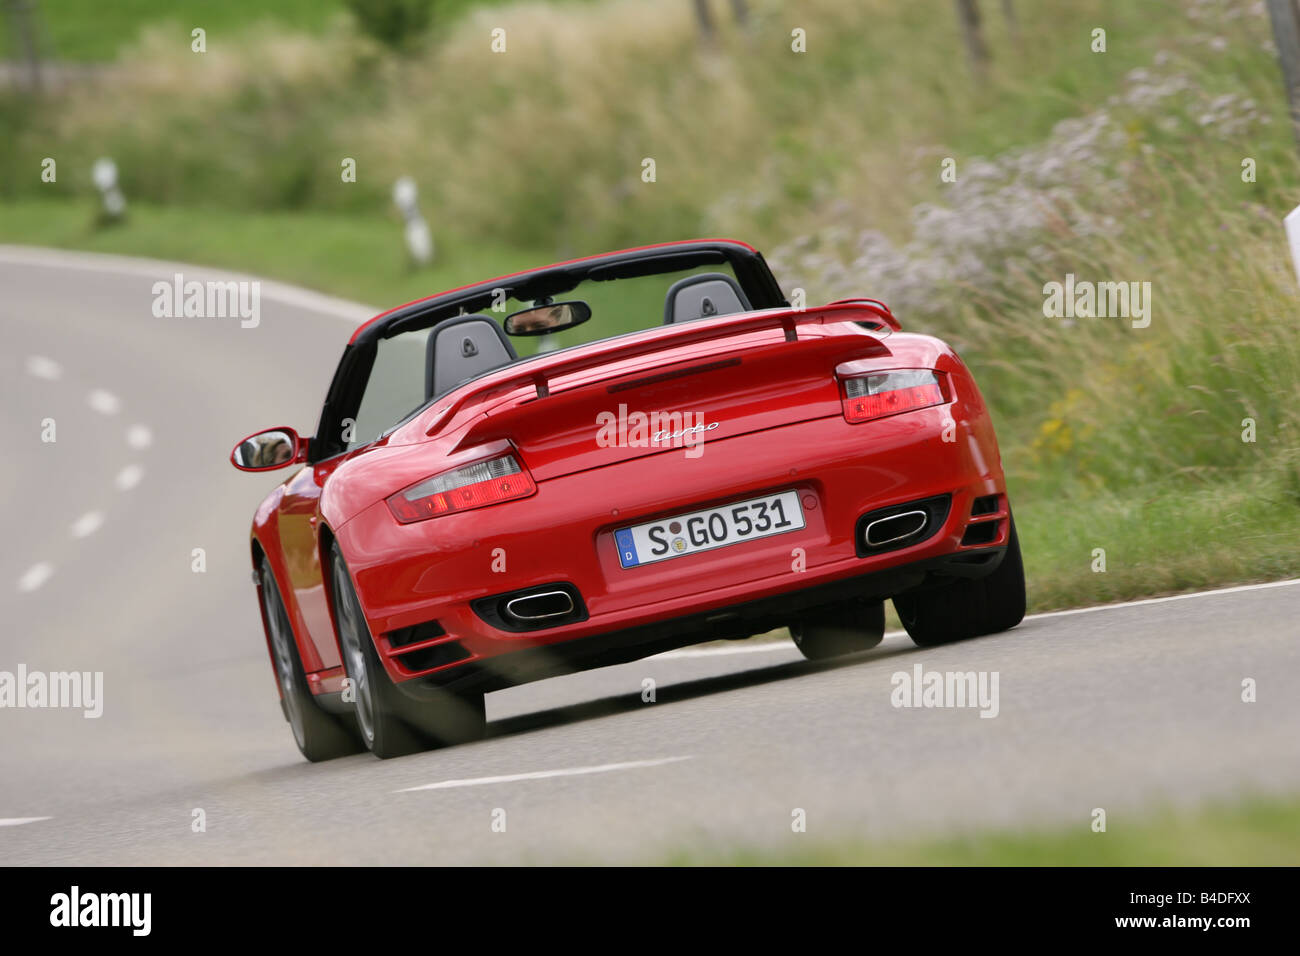 Porsche 911 Turbo Convertible Model Year 2007 Red